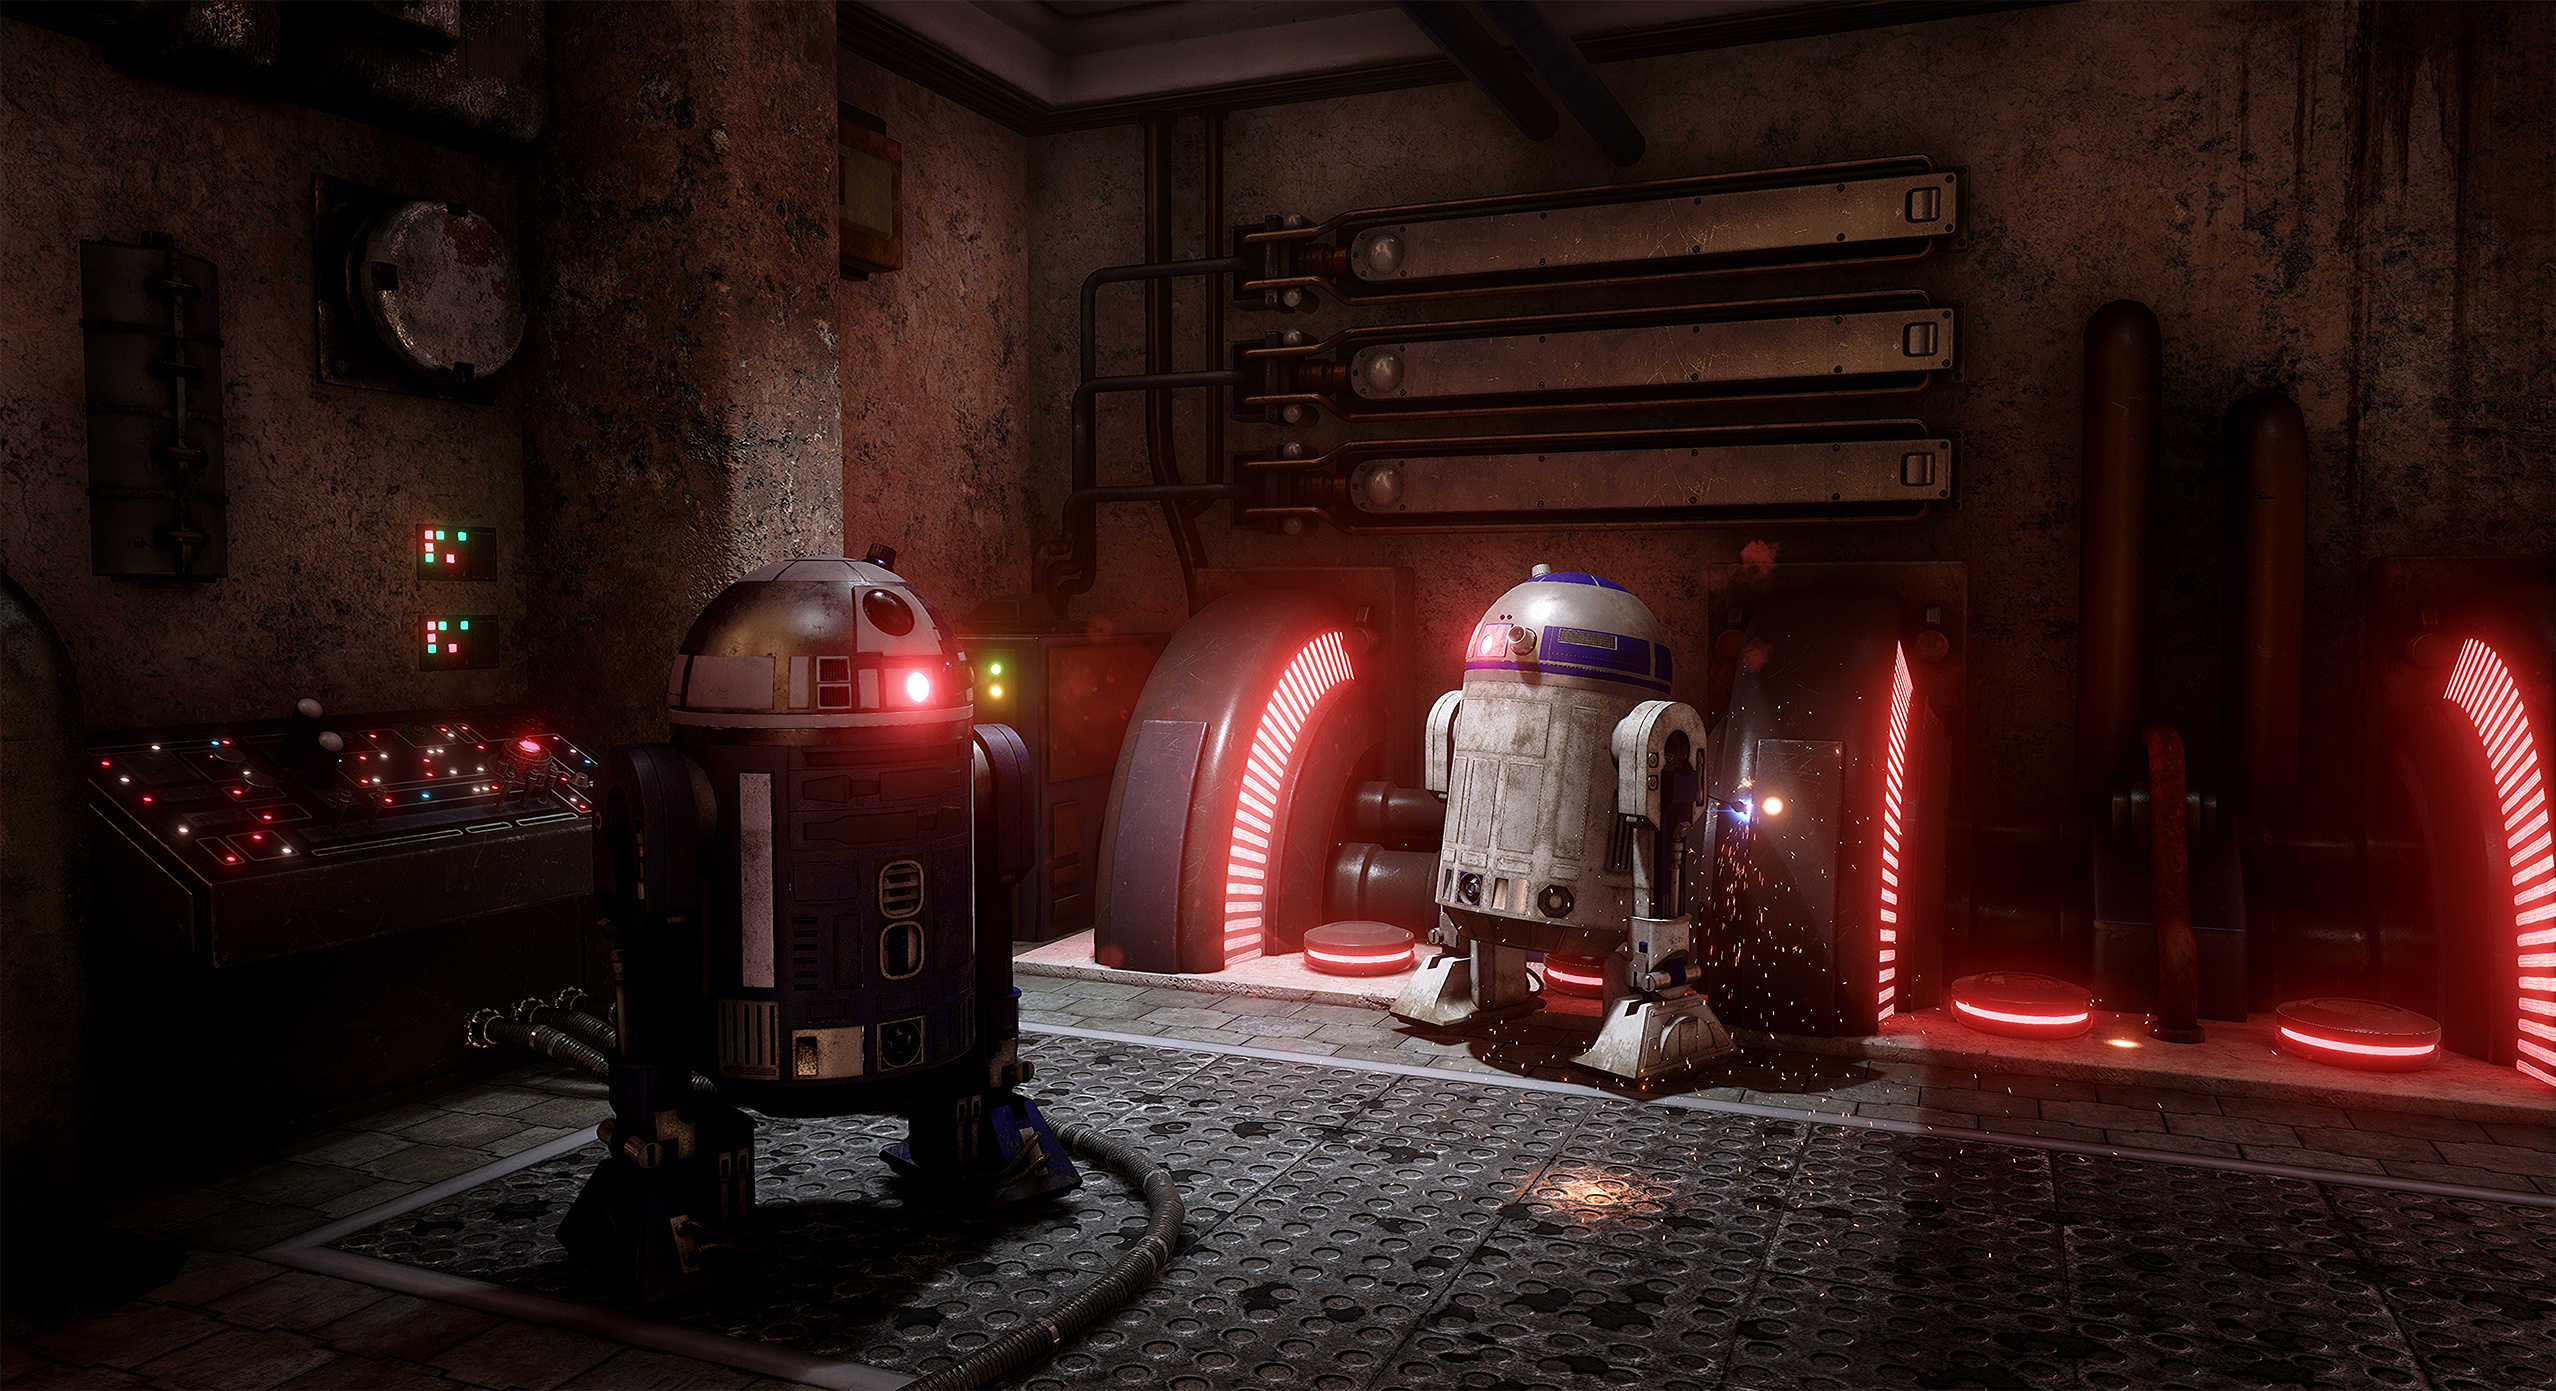 Star Wars Looks Absolutely Stunning On Unreal Engine 4 1ys62Bx